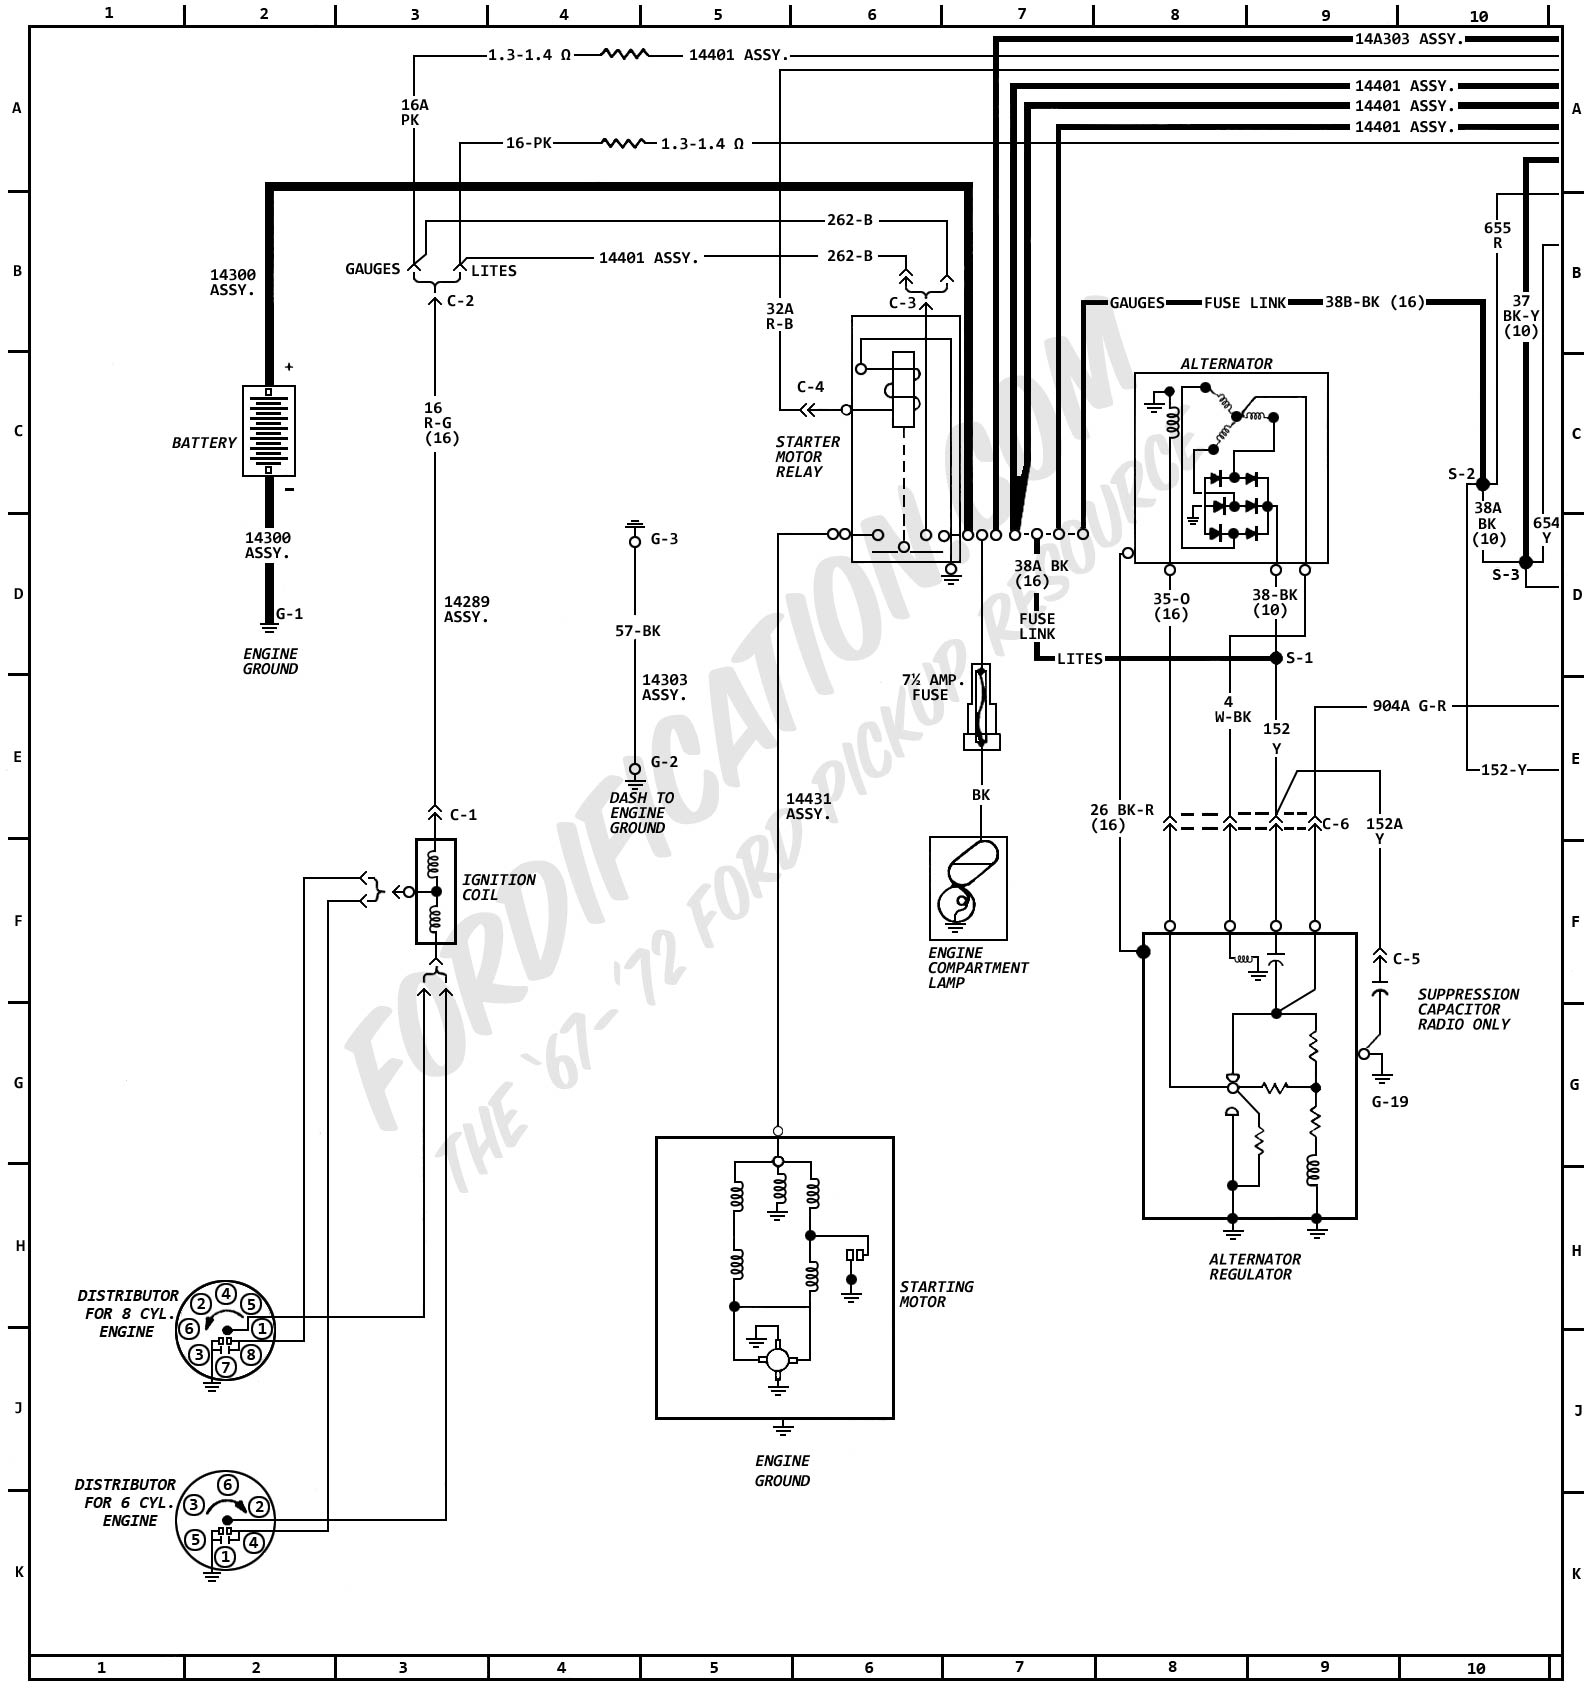 1985 ford f 250 super duty wiring diagram wiring schematics diagram rh enr  green com 1985 ford bronco ii wiring diagrams 85 ford bronco wiring diagram